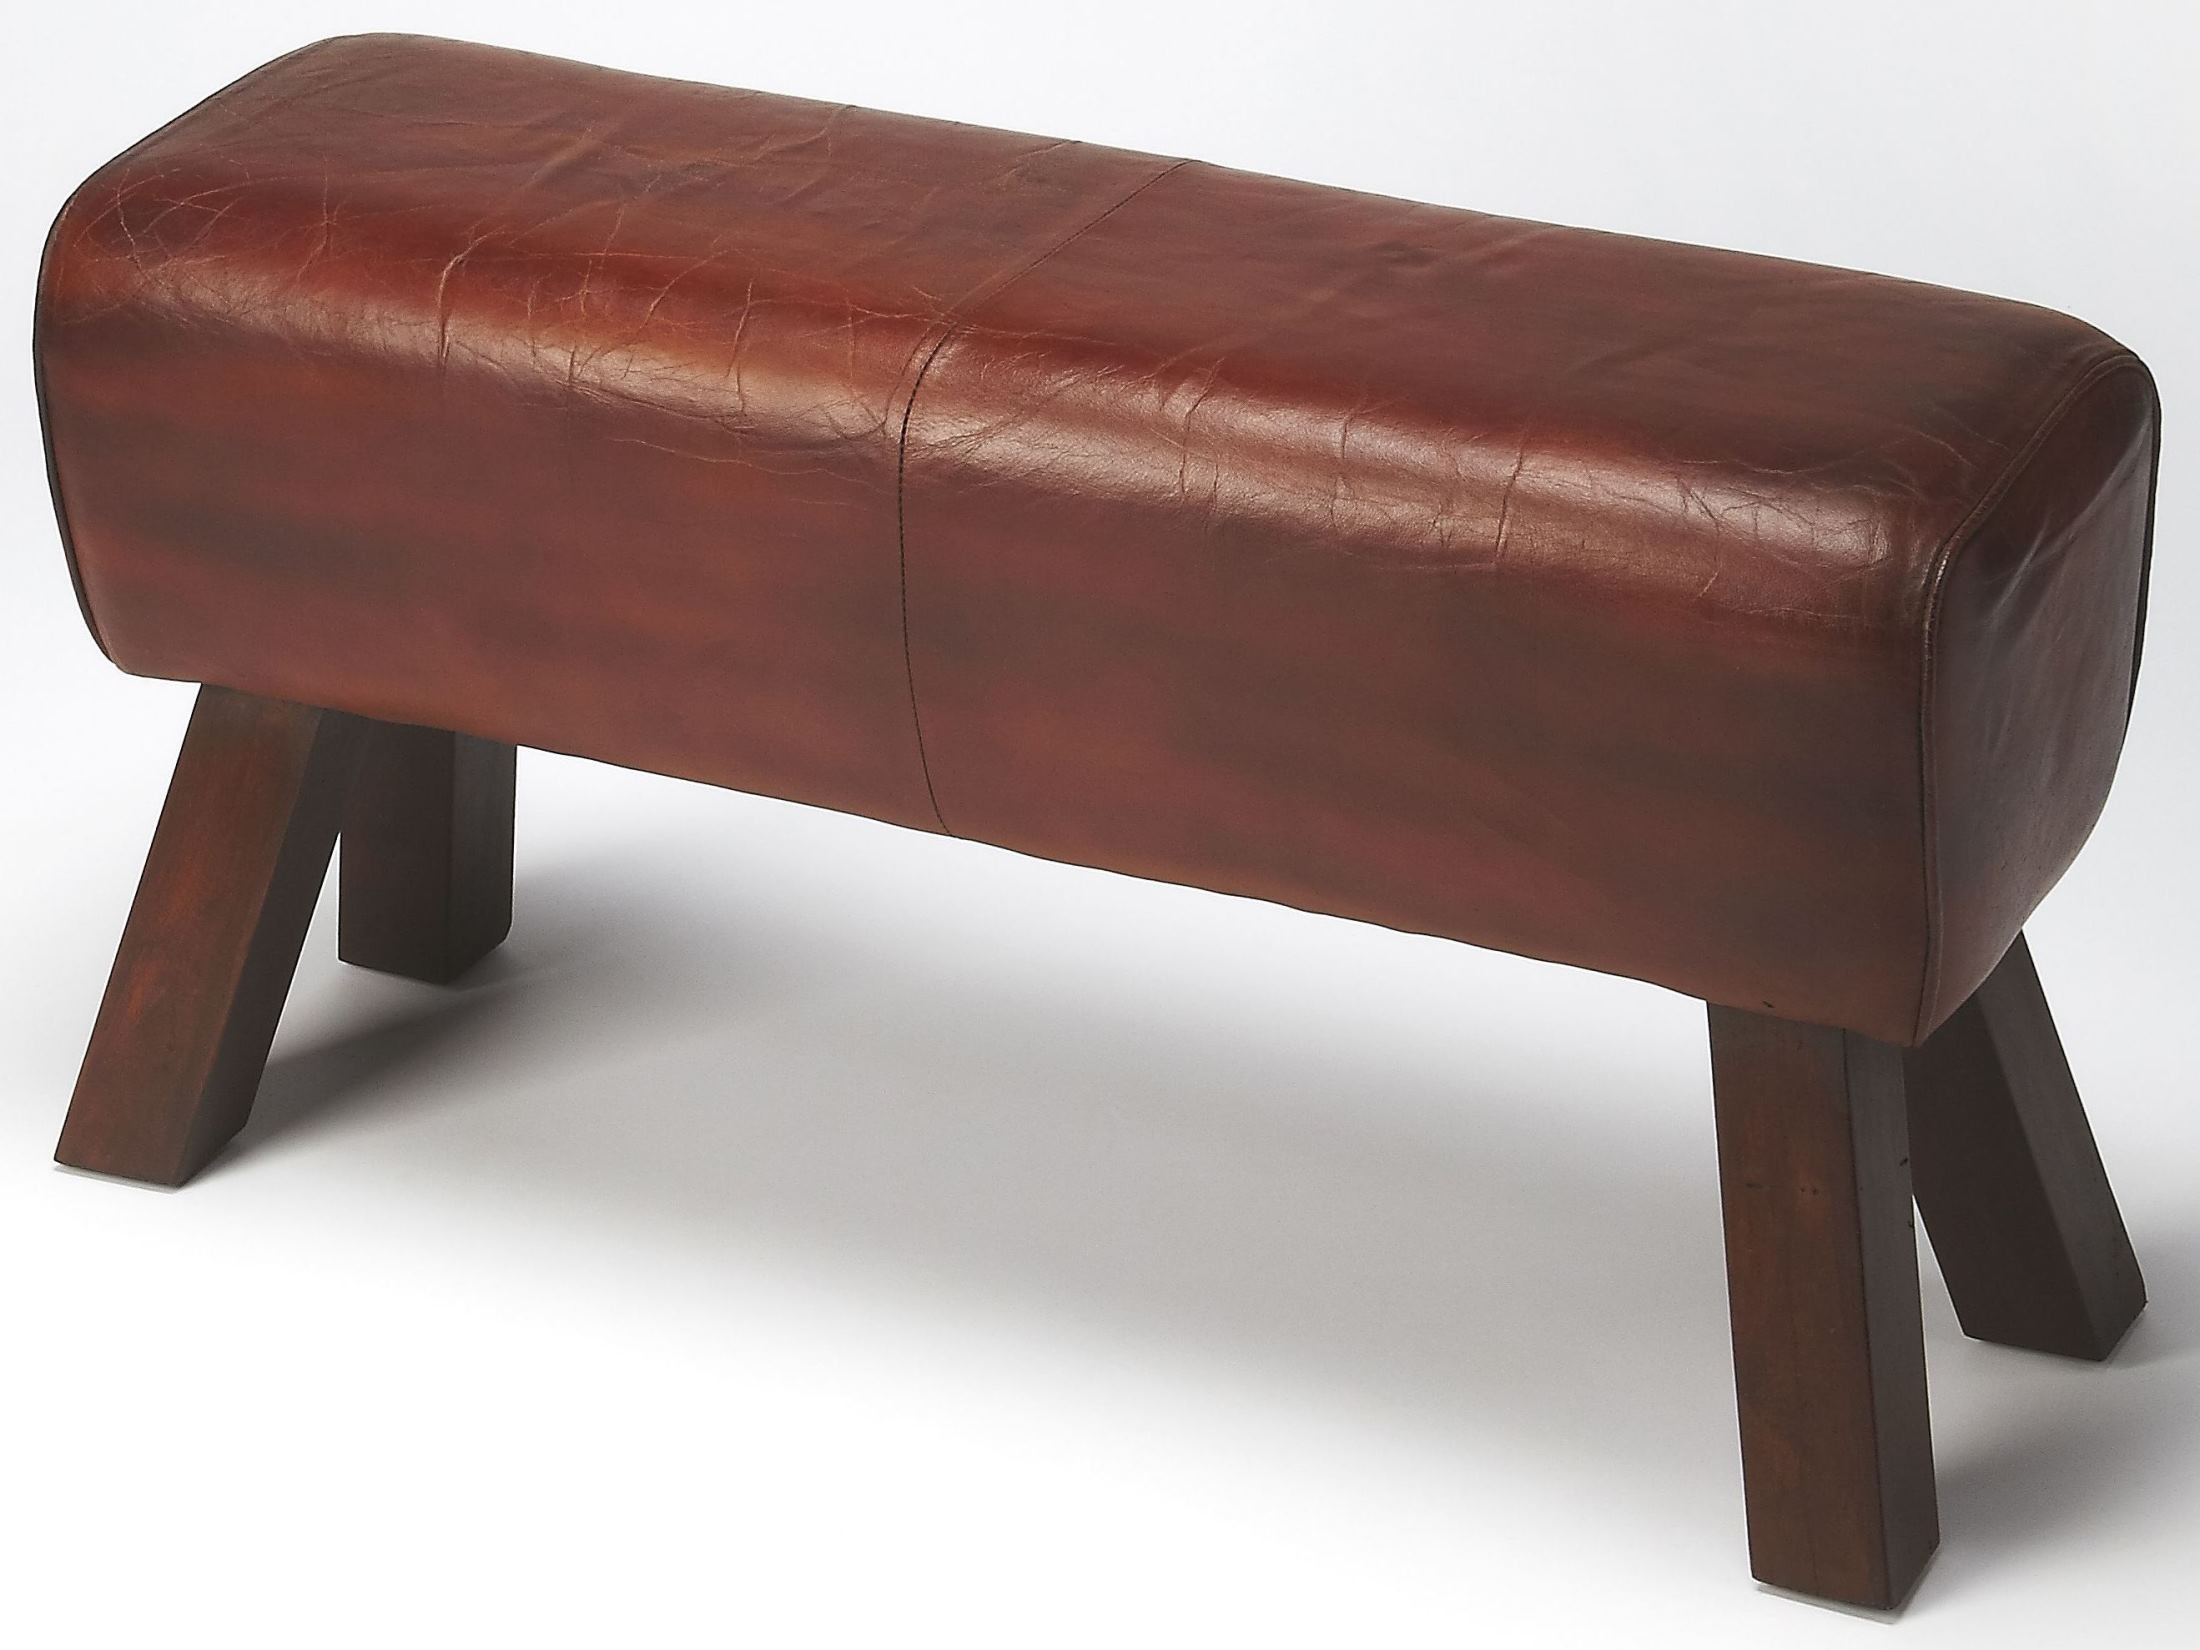 Masterson Brown Leather Bench From Butler Coleman Furniture